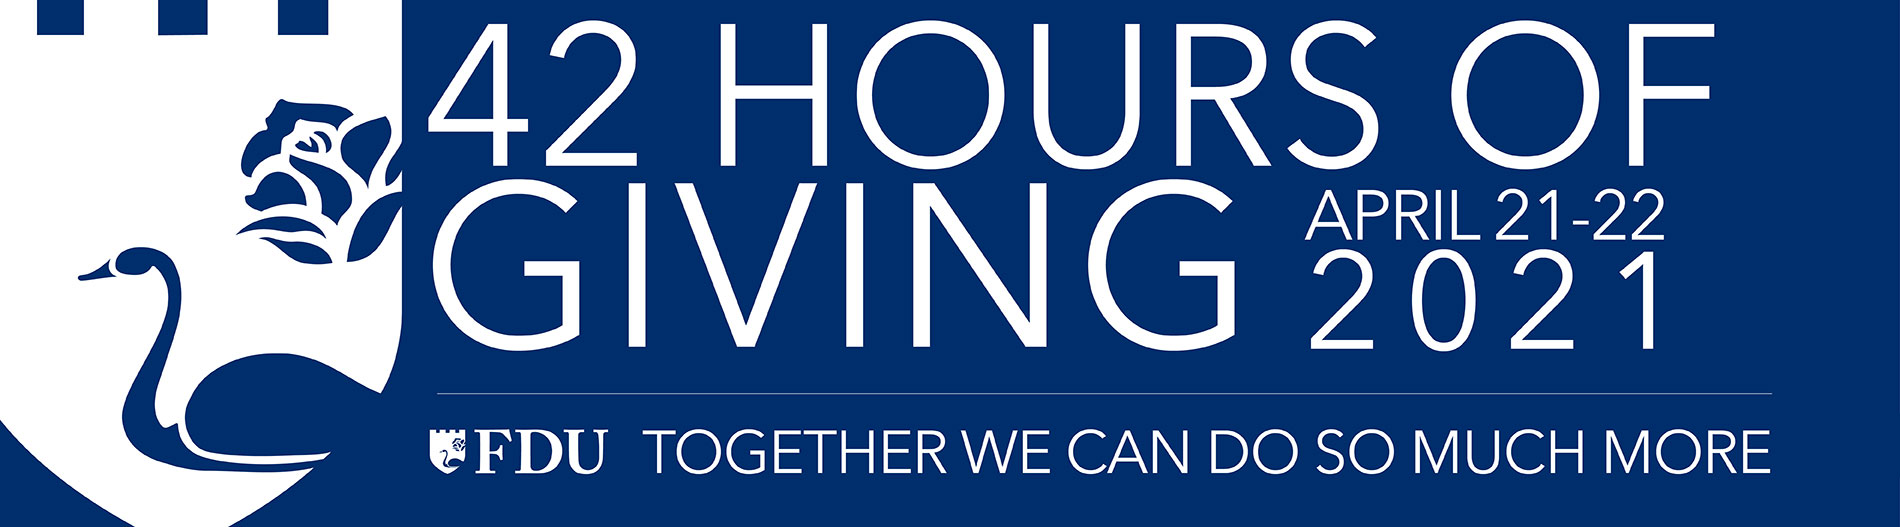 FDU 42 Hours of Giving Banner